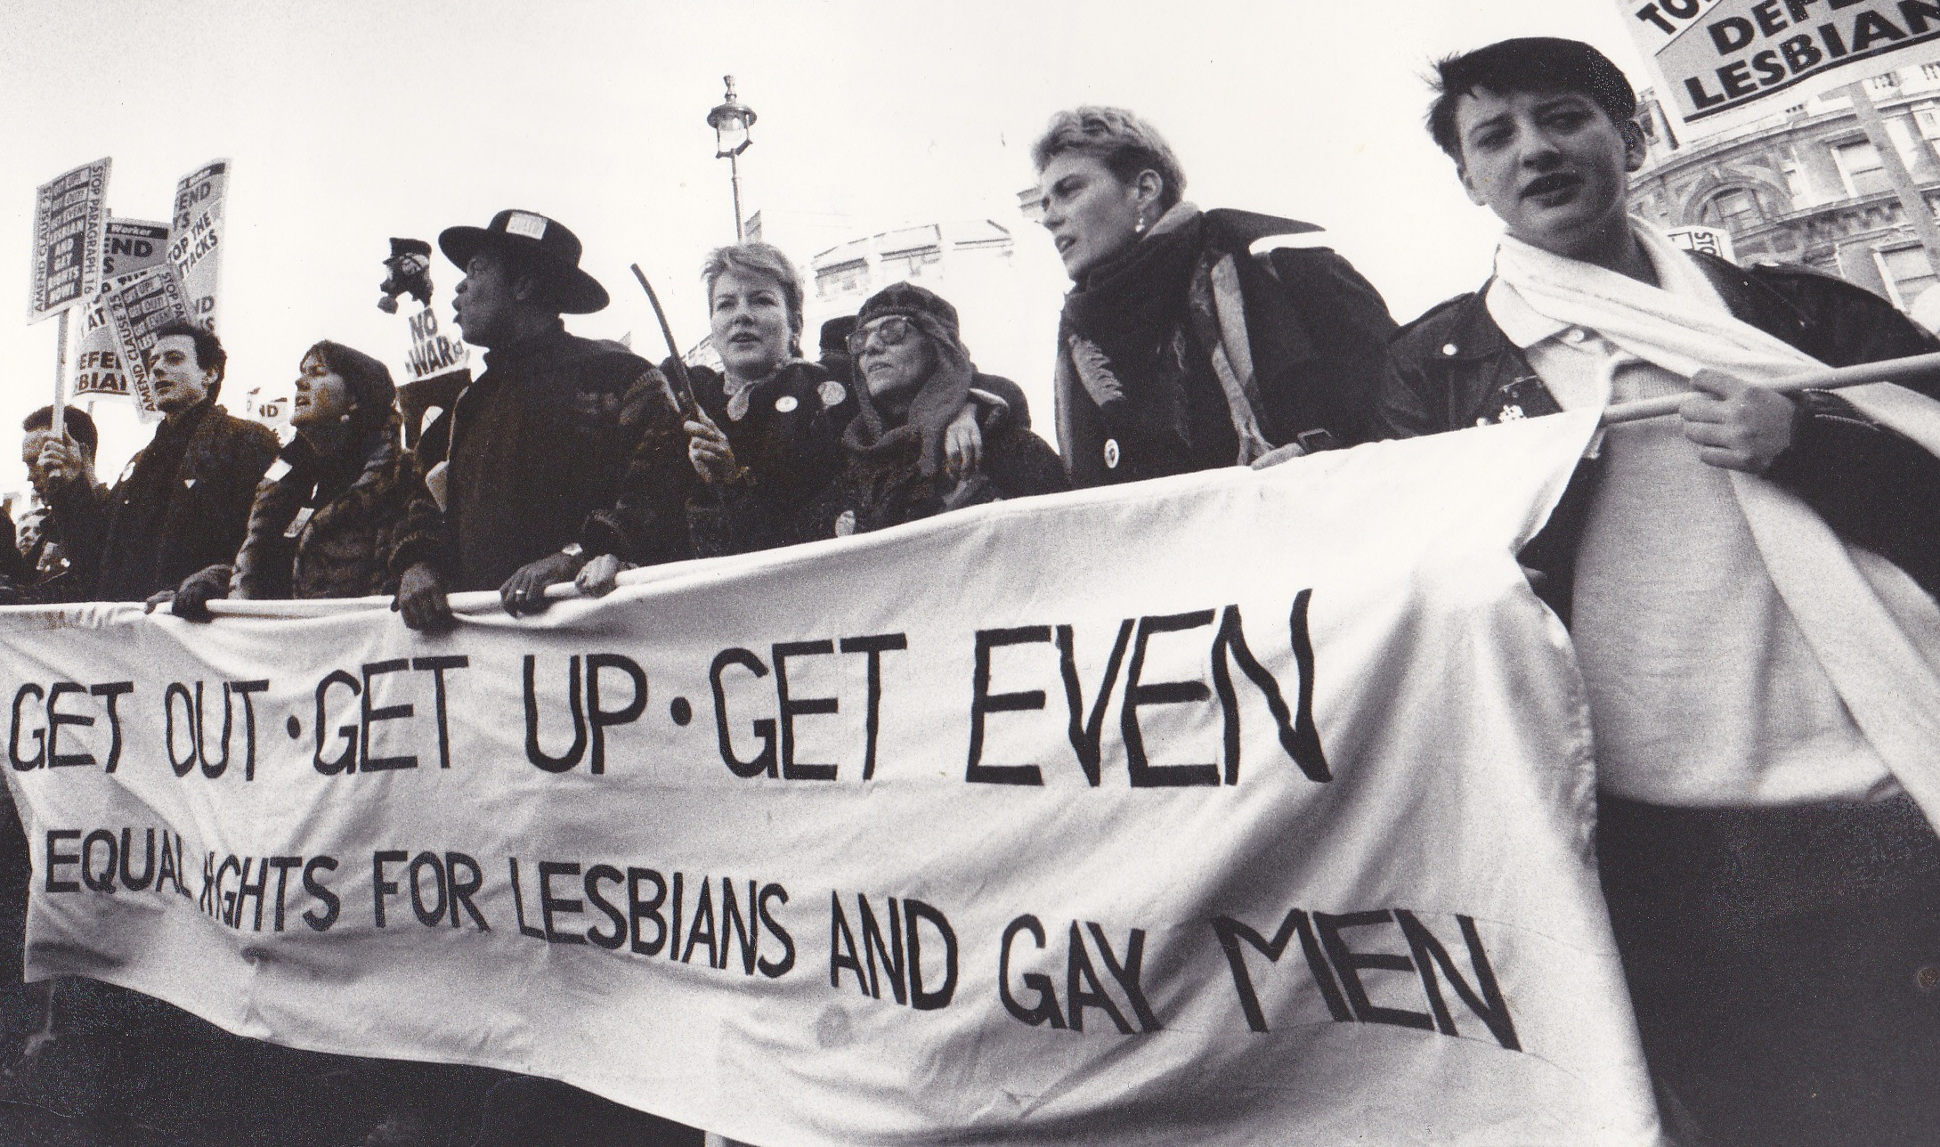 1960s gay rights